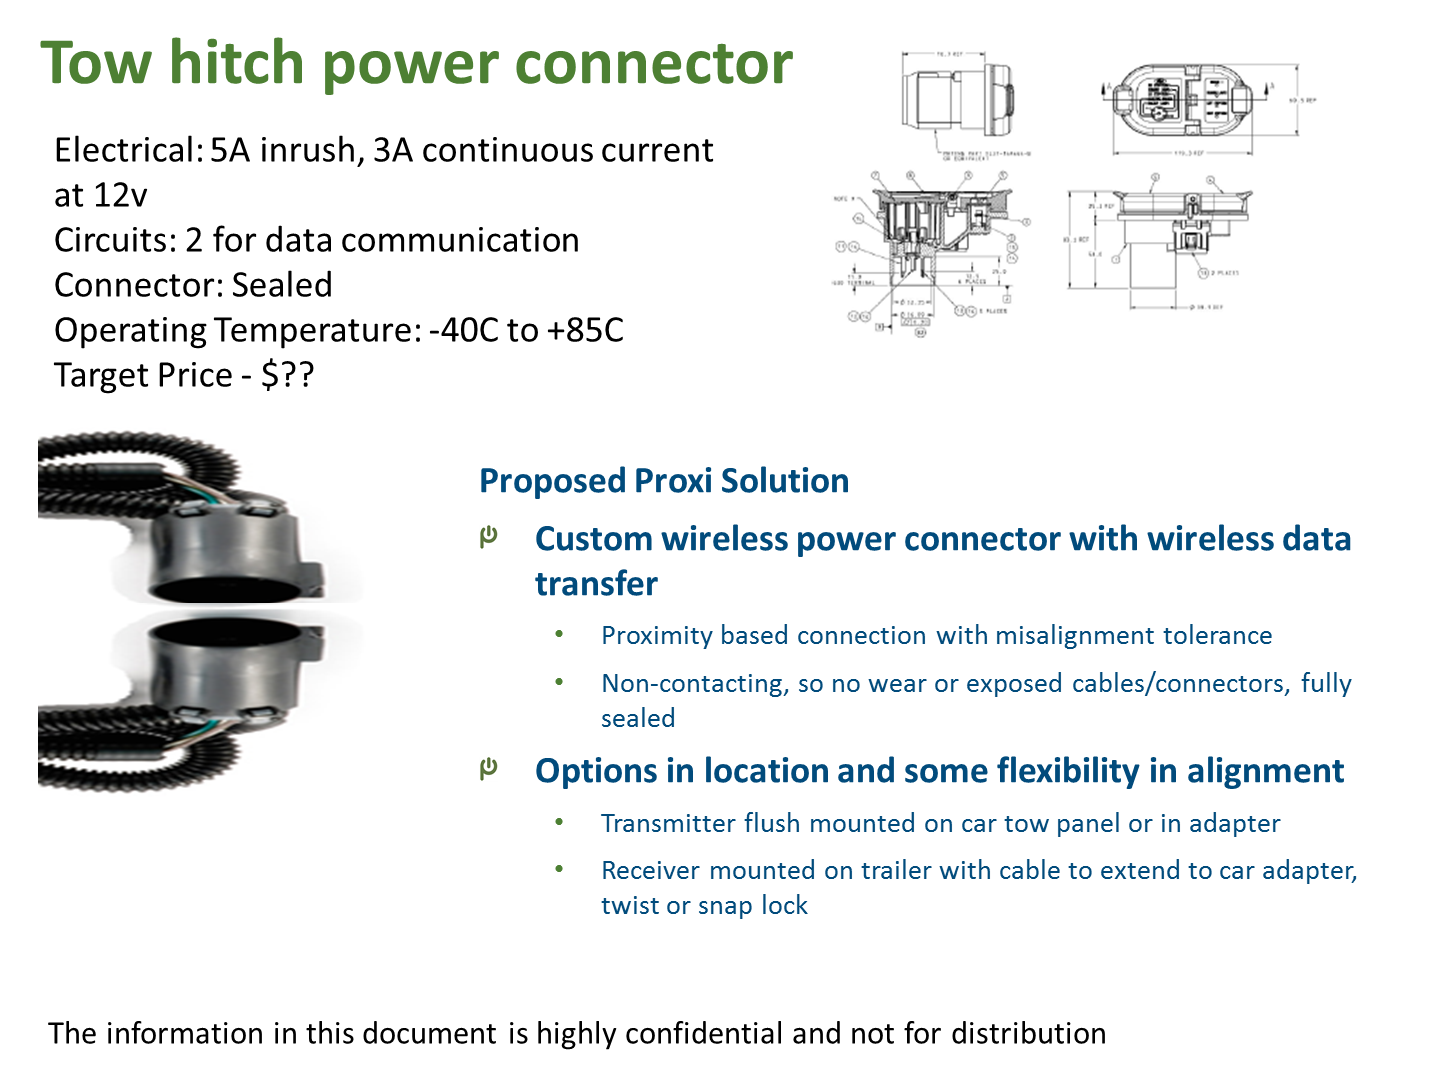 Design Hmi Wireless Power Transfer And Charging Transmitter Circuit Proxi Module Platform Is A Modular Data System Enabling Anyone To Adapt Integrate Effortlessly Into Their Products